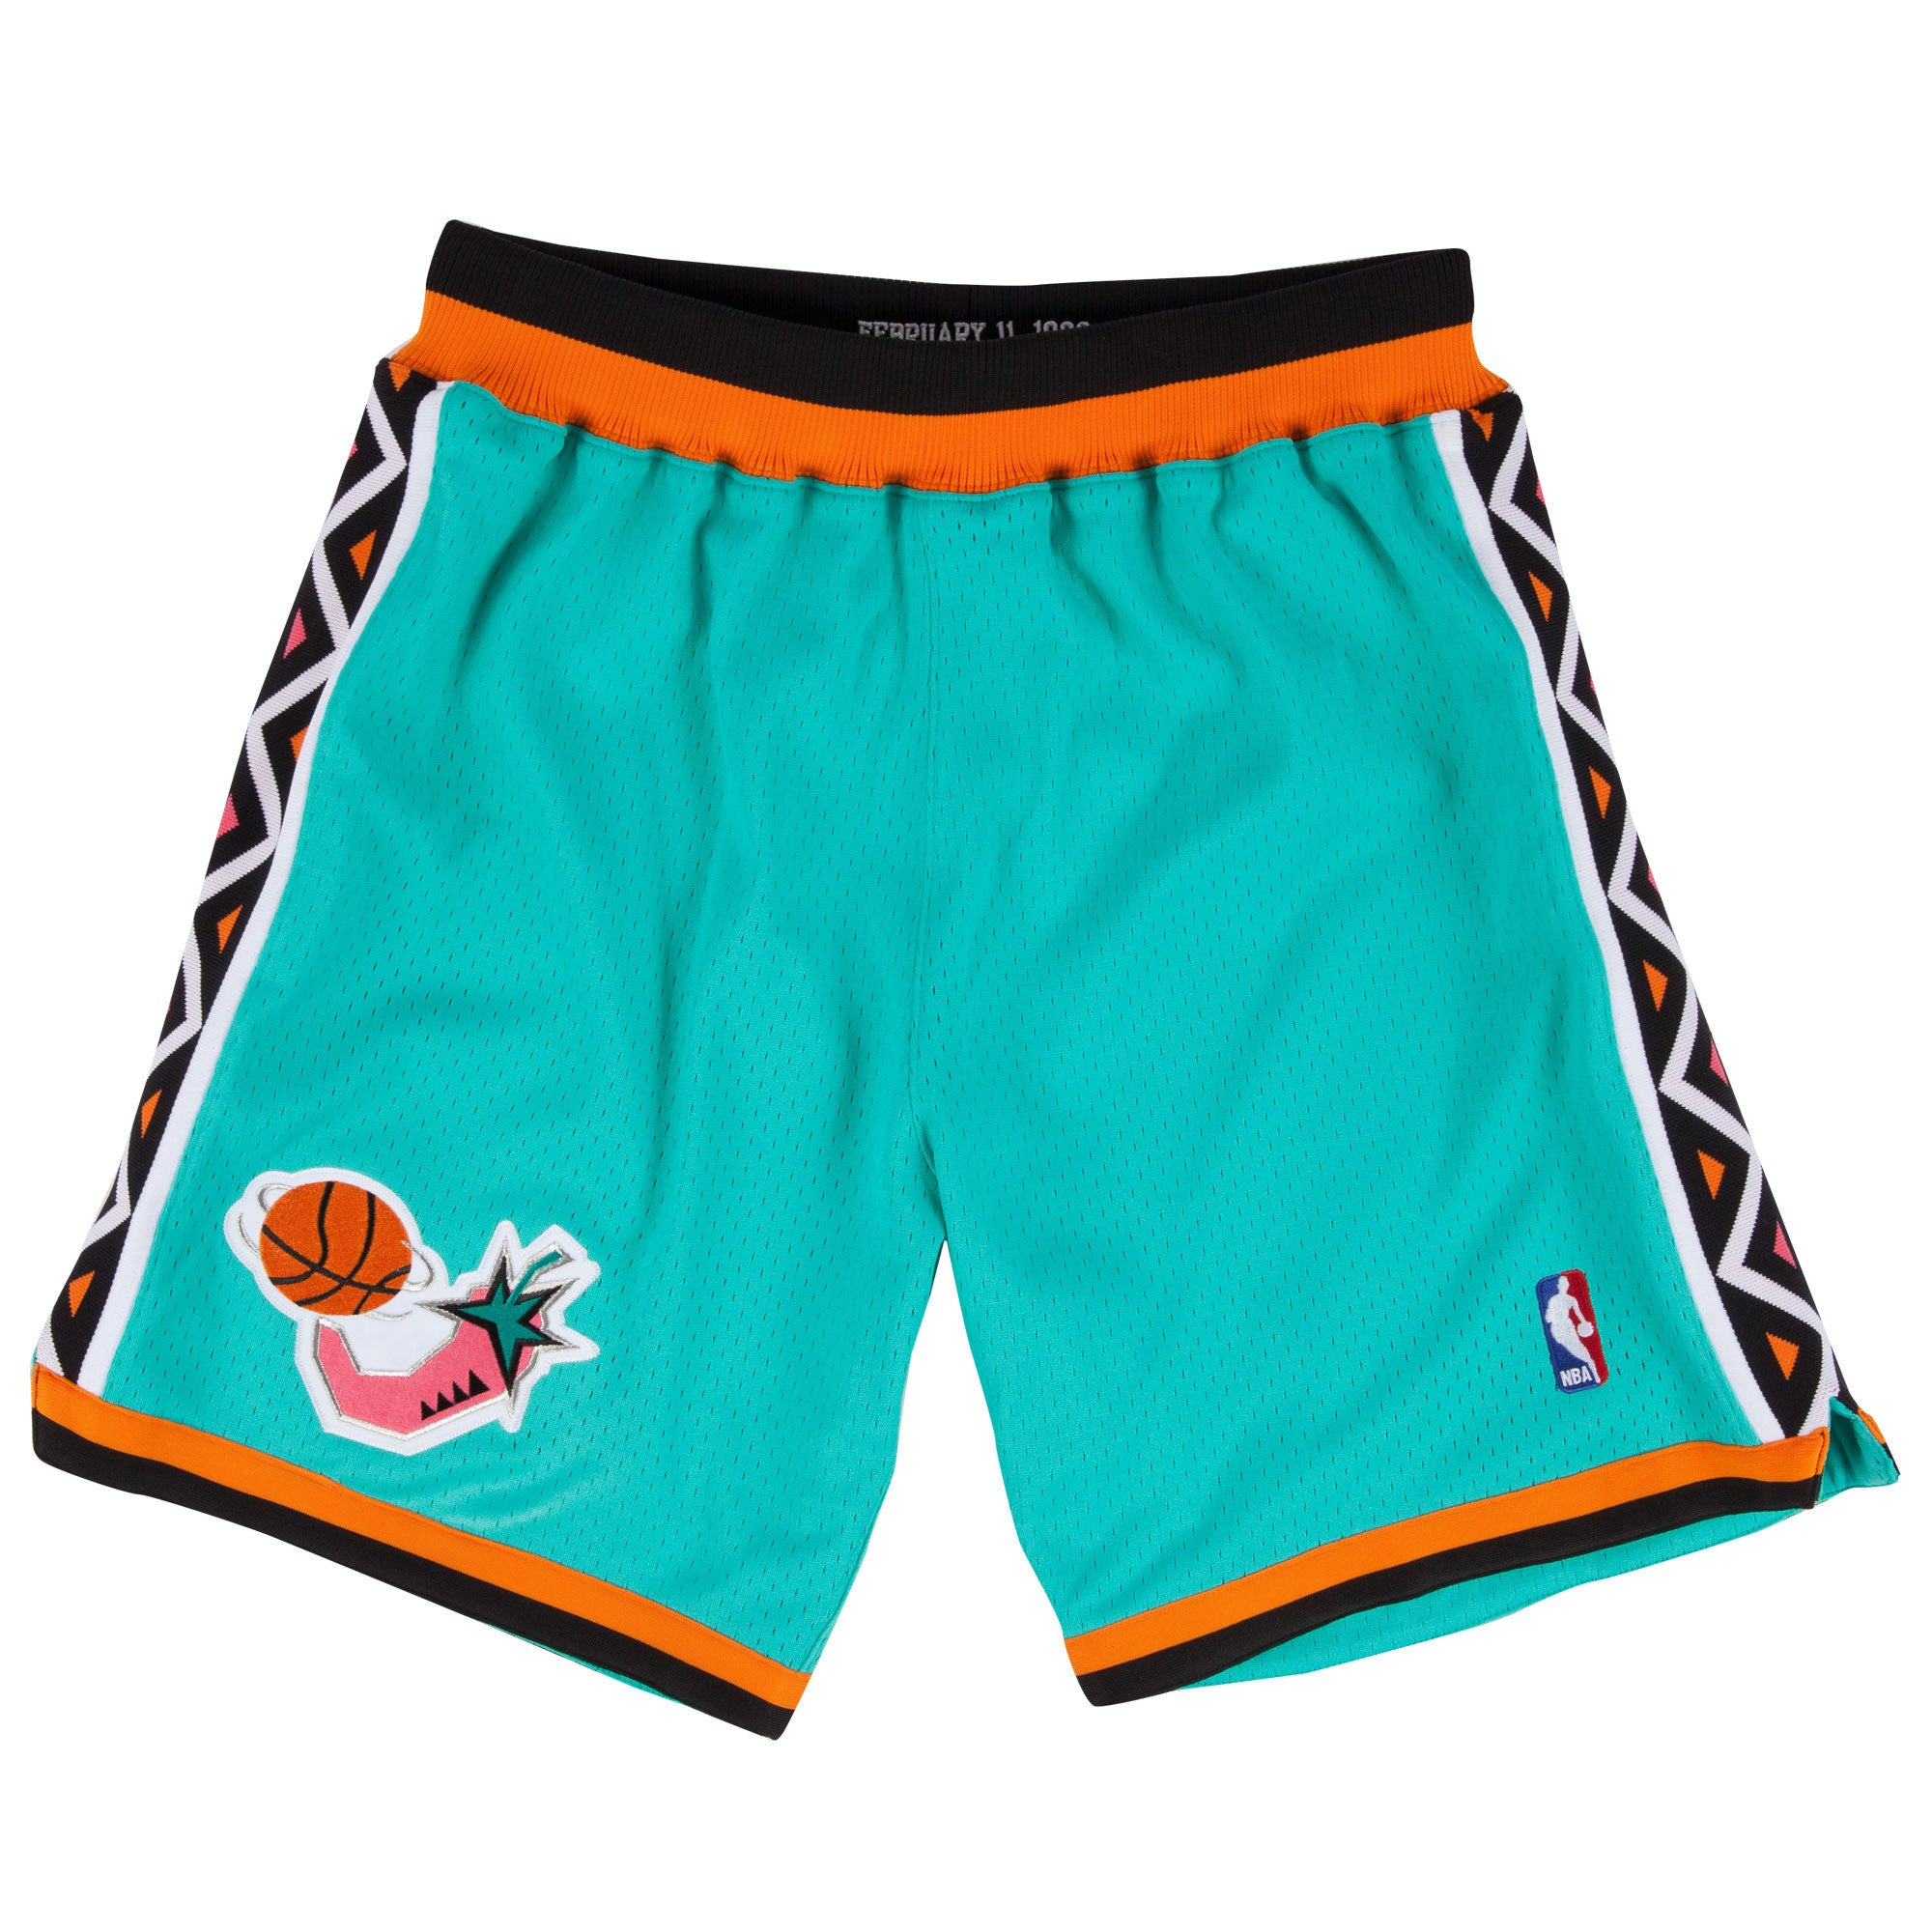 23736cba8d5 1996 NBA All Star Game NBA Authentic Shorts